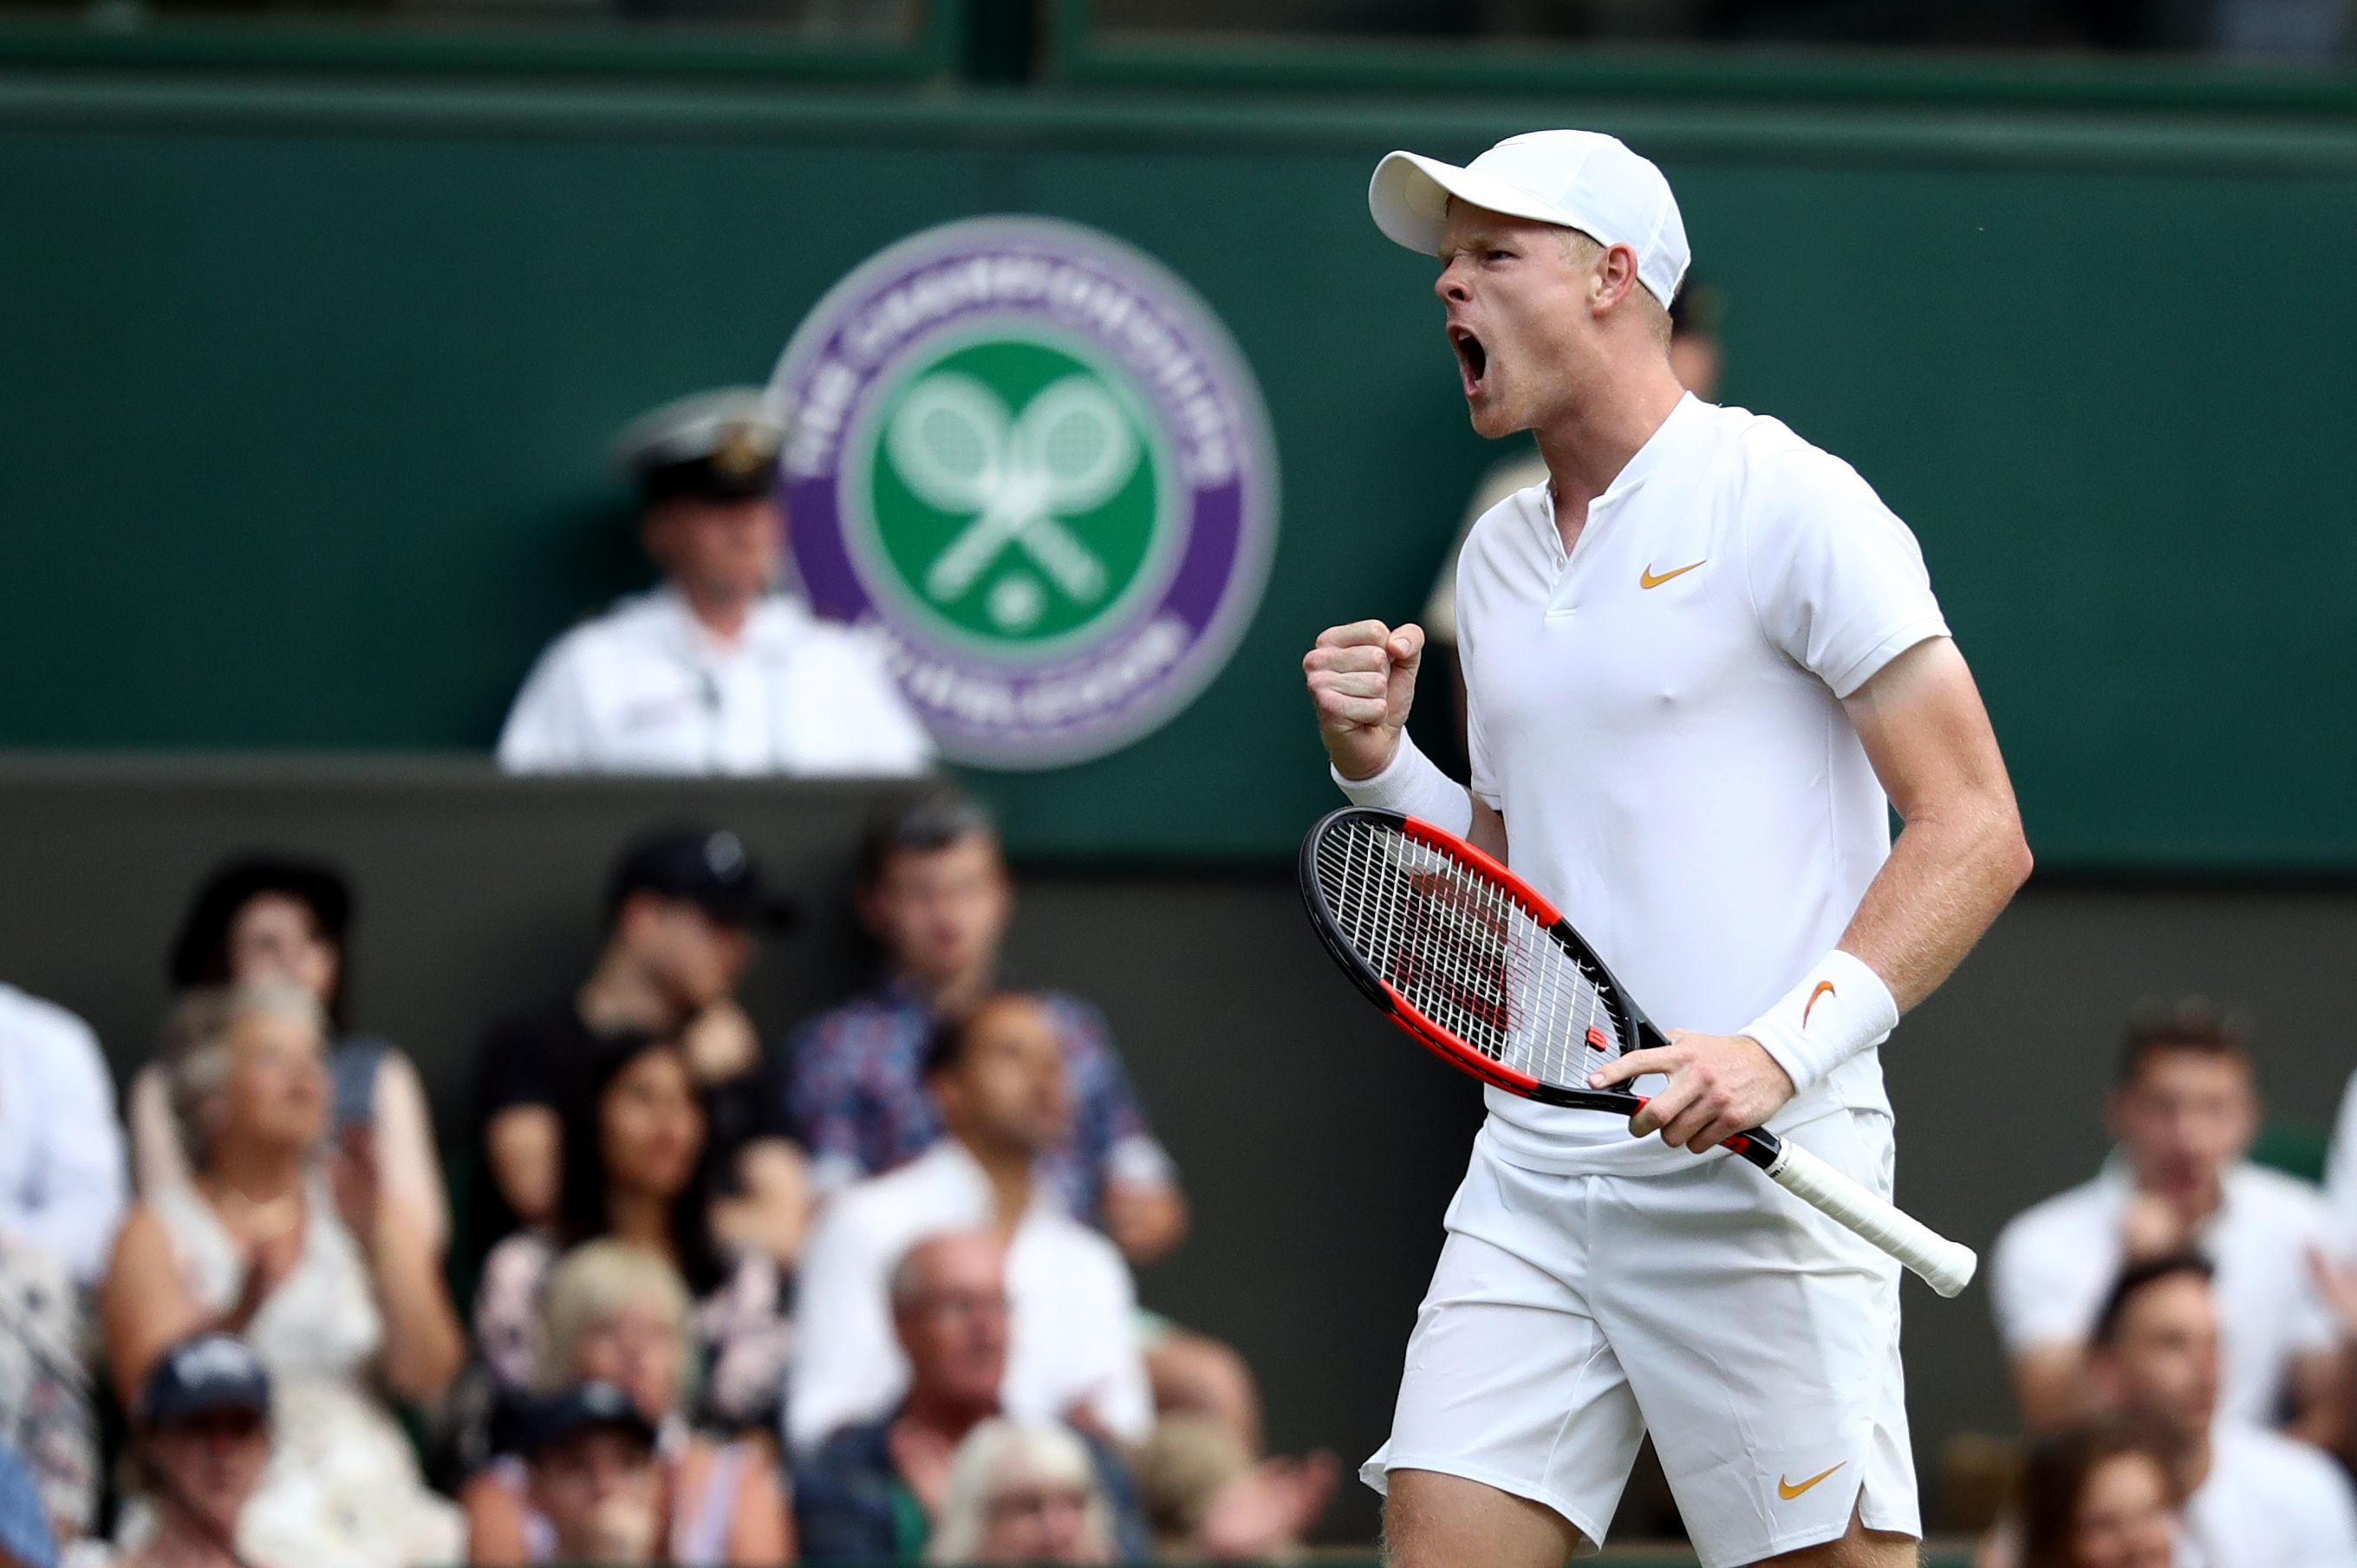 Kyle Edmund served brilliantly and held his nerve on the big points